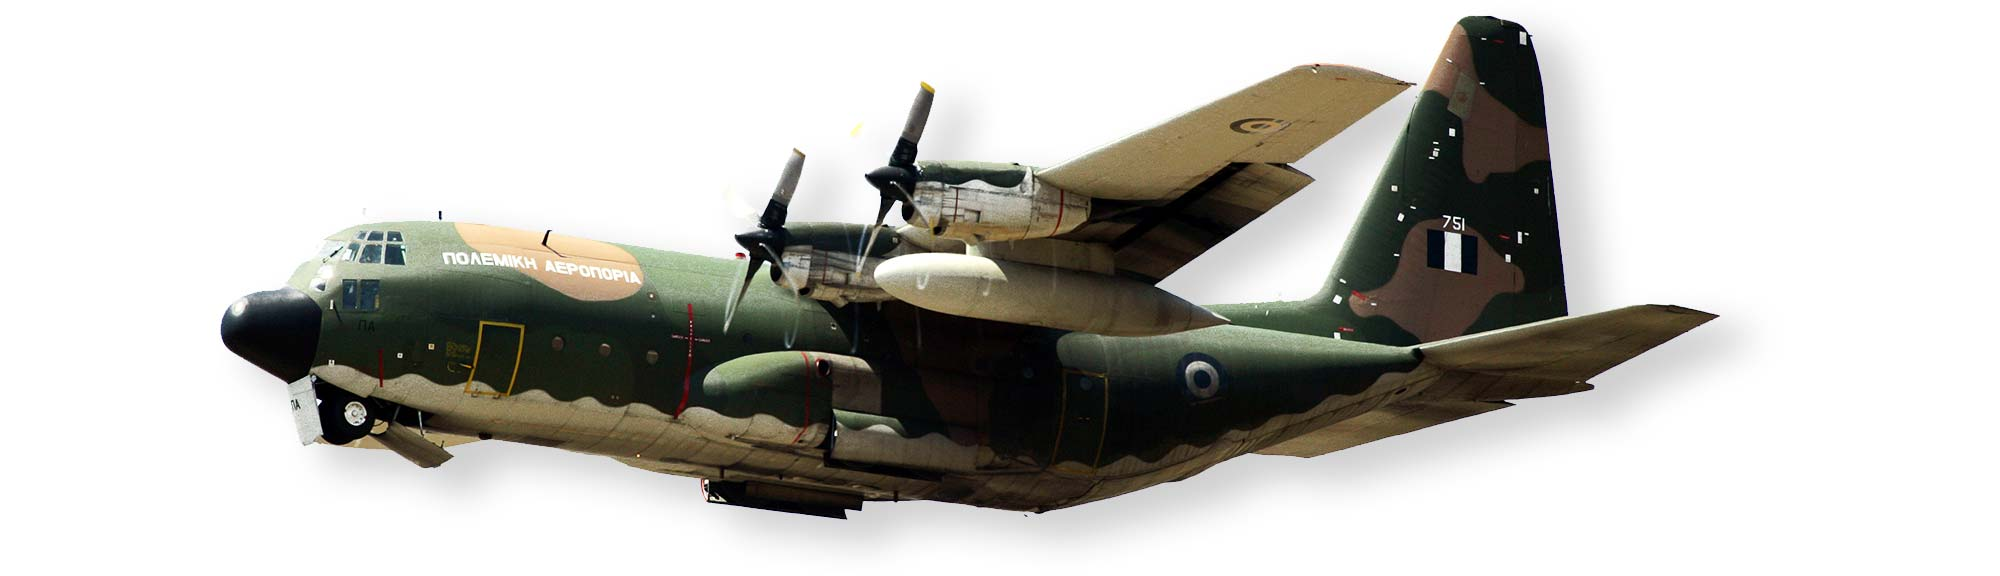 the t56 is a single shaft modular design turboprop engine the gearbox has two stages of gear reduction features a propeller brake and is connected to  [ 2000 x 576 Pixel ]